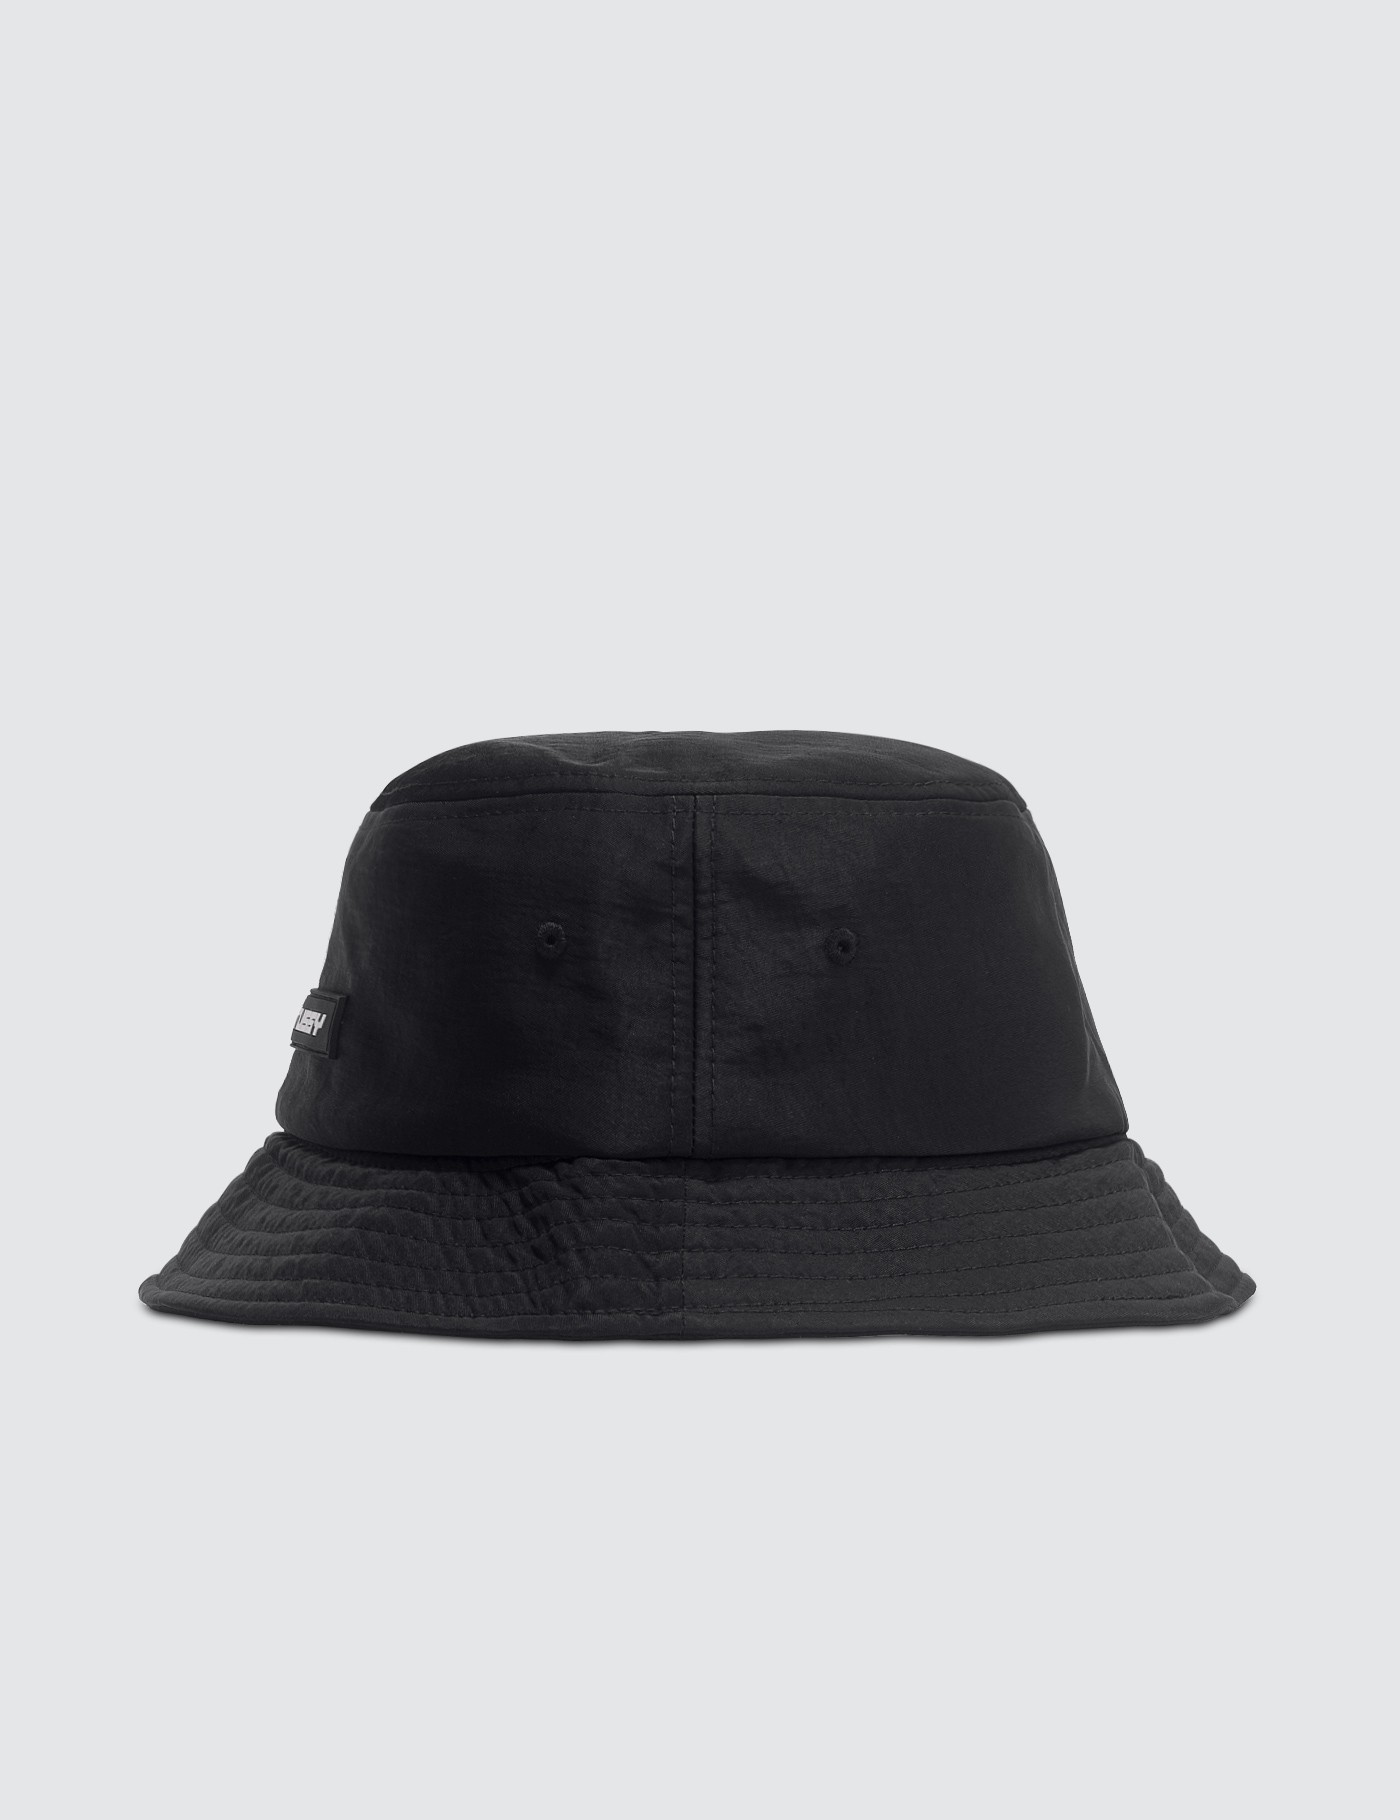 95694eae5 Nylon Rubber Patch Bucket Hat, Stussy